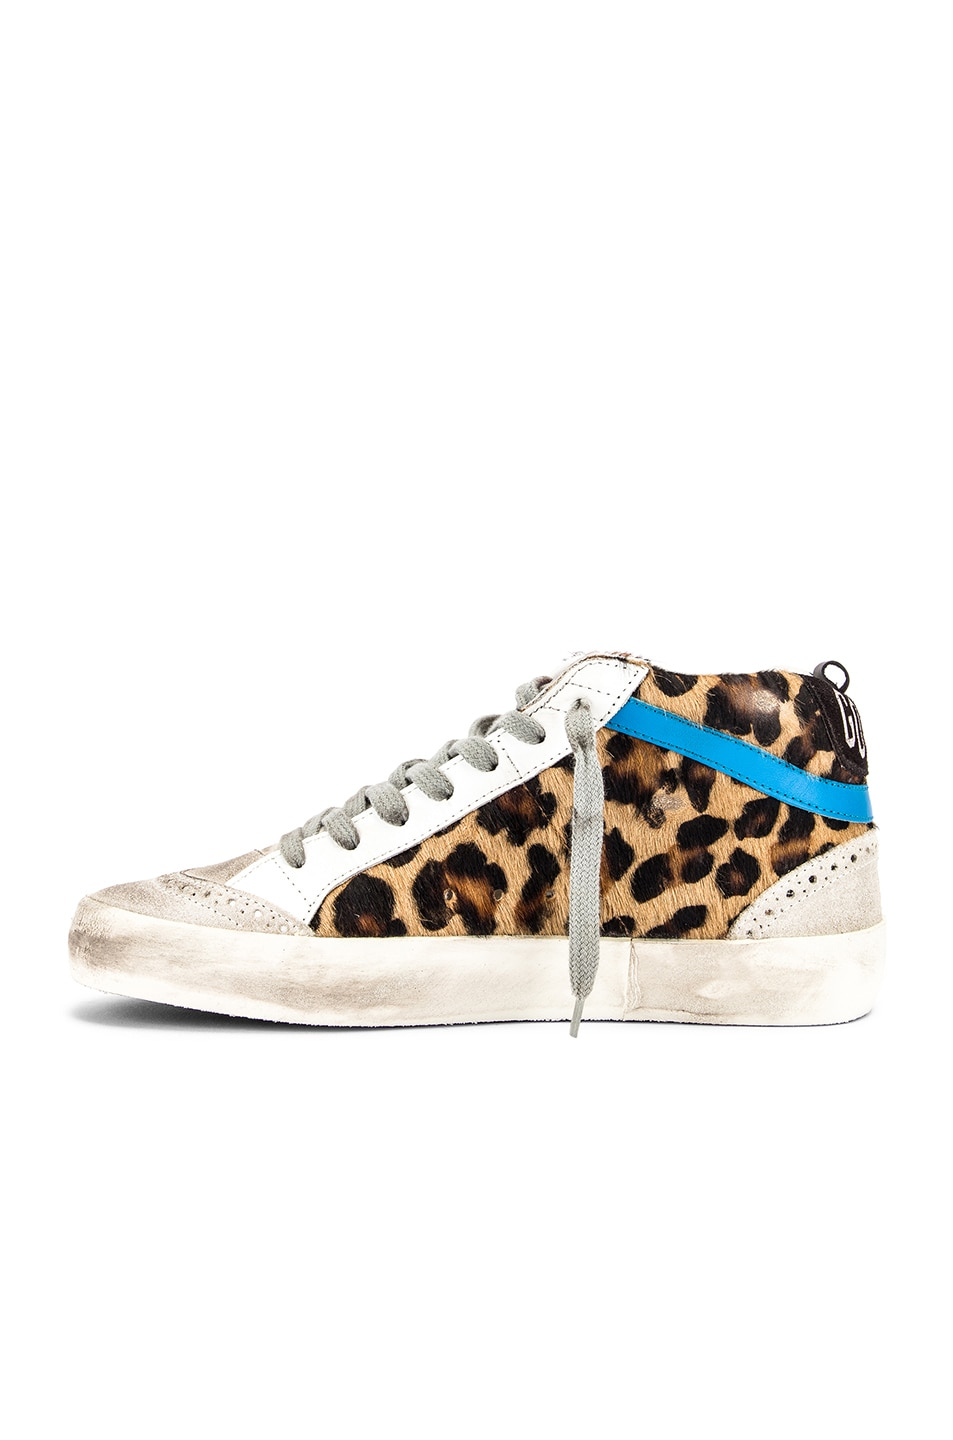 Image 5 of Golden Goose Mid Star Sneaker in Leopard Pony & Black